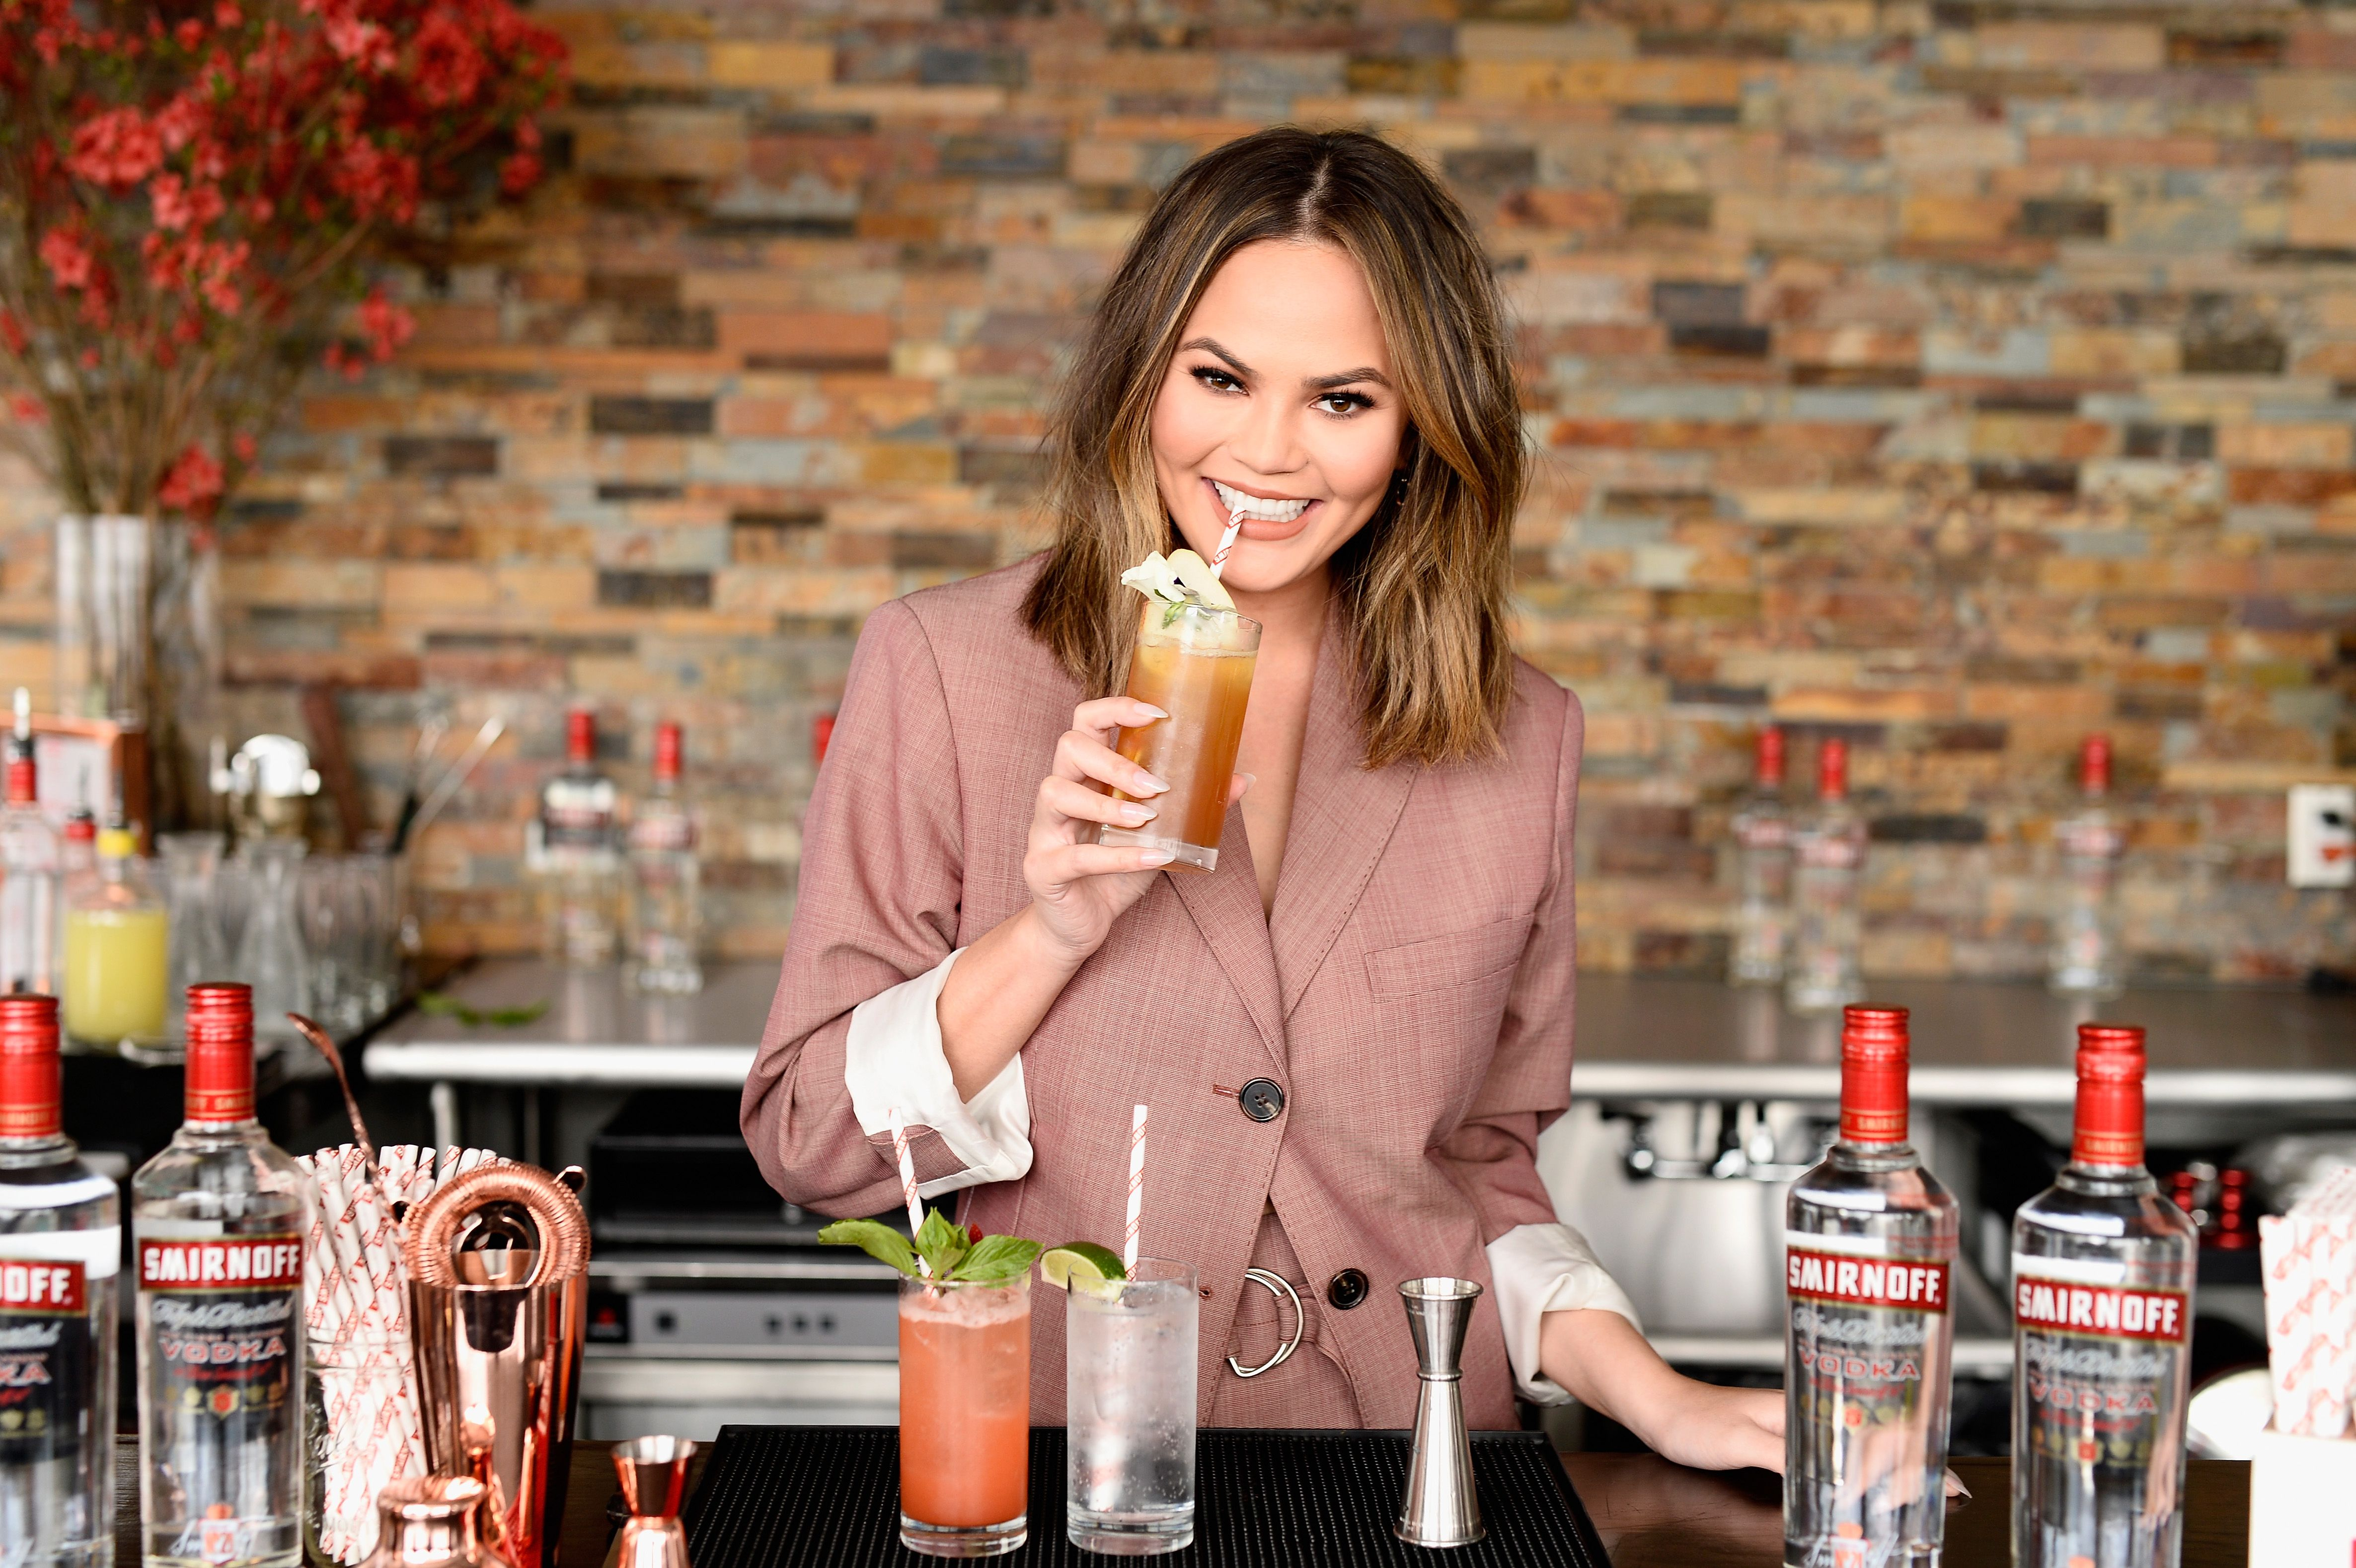 Chrissy Teigen's Secret Ingredients for Hot Cocoa Will Blow Your Mind